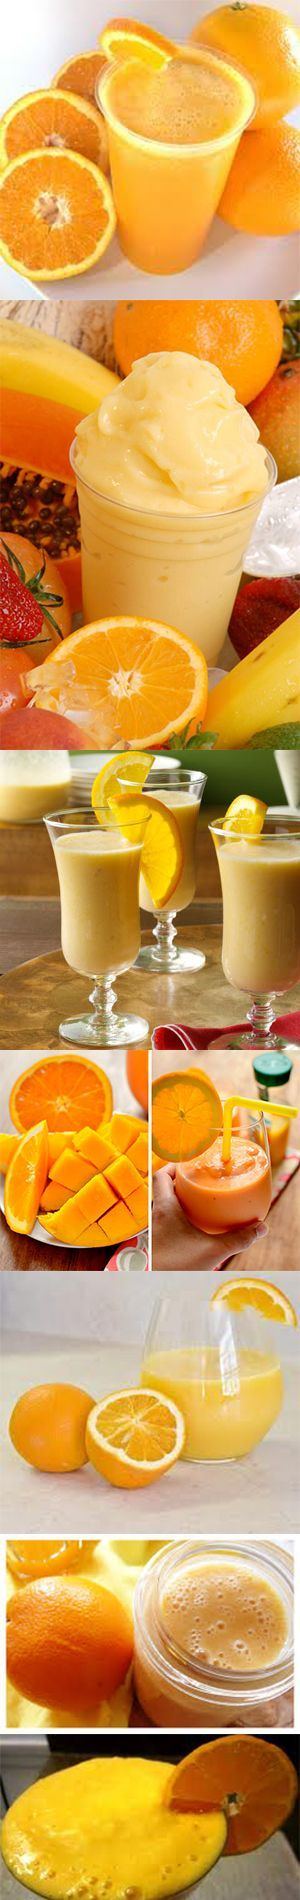 From Orange Pineapple Coconut Smoothie to Orange Banana Cream Smoothie you'll find them here; Click HERE for the recipes